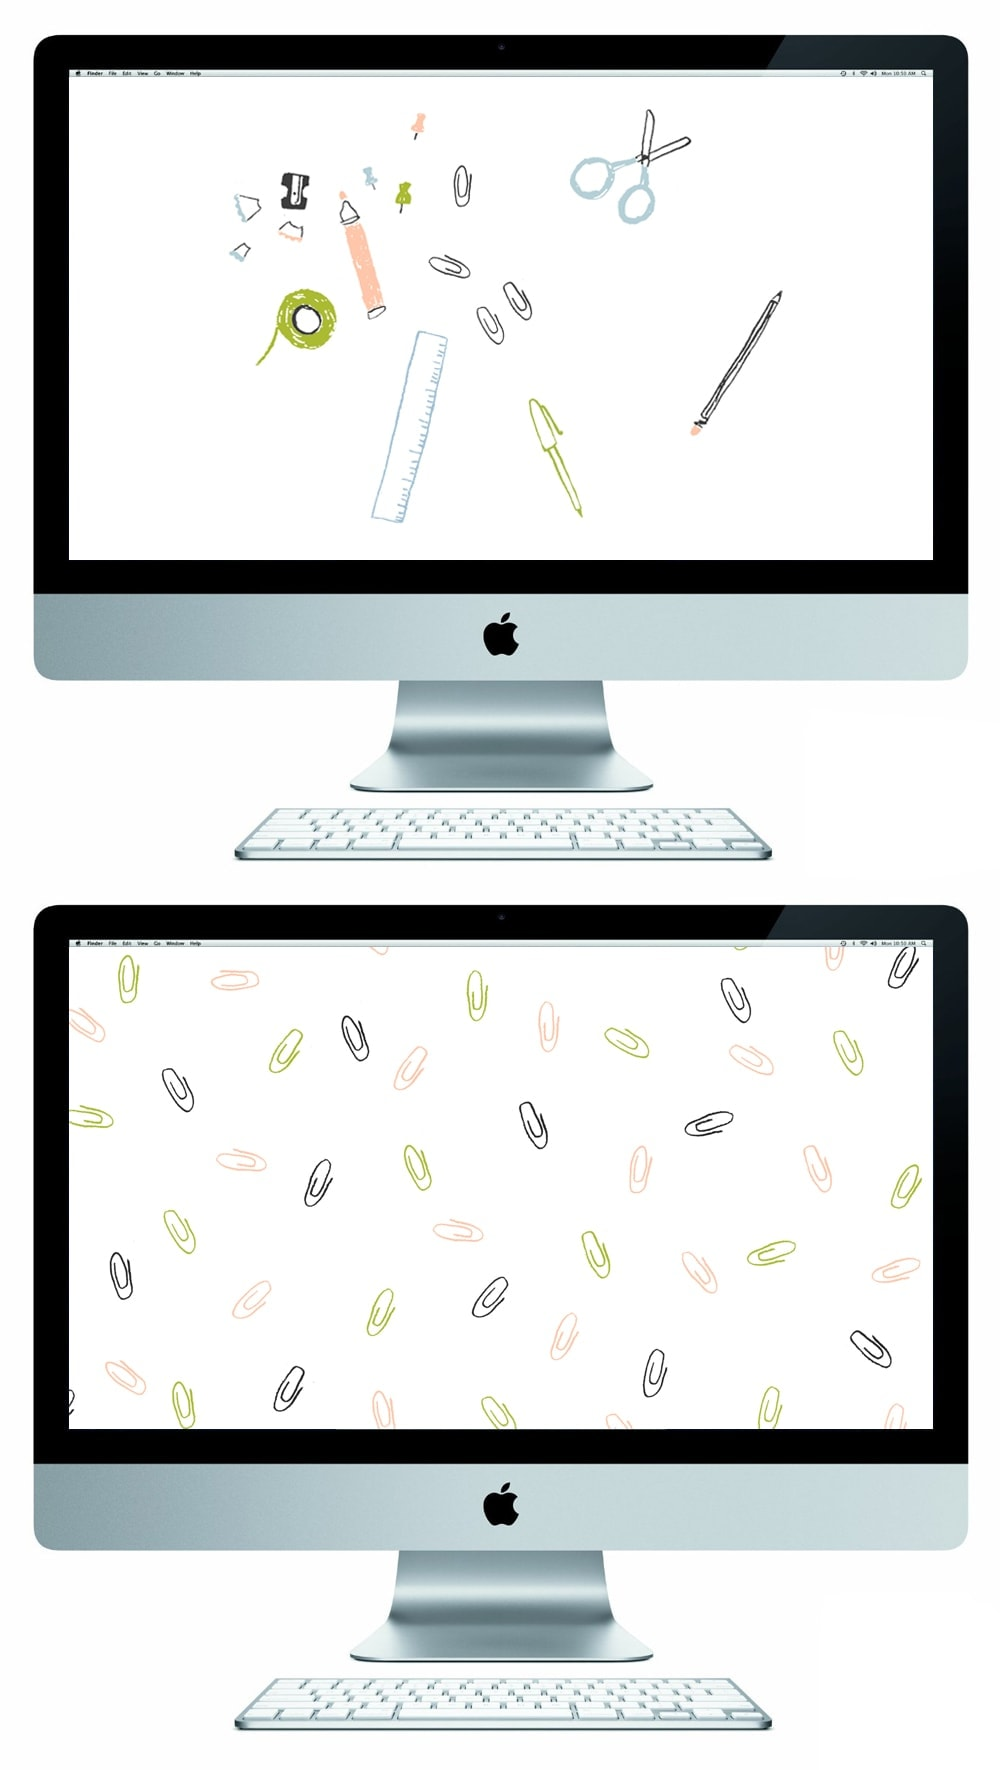 stationery party free desktop wallpapers